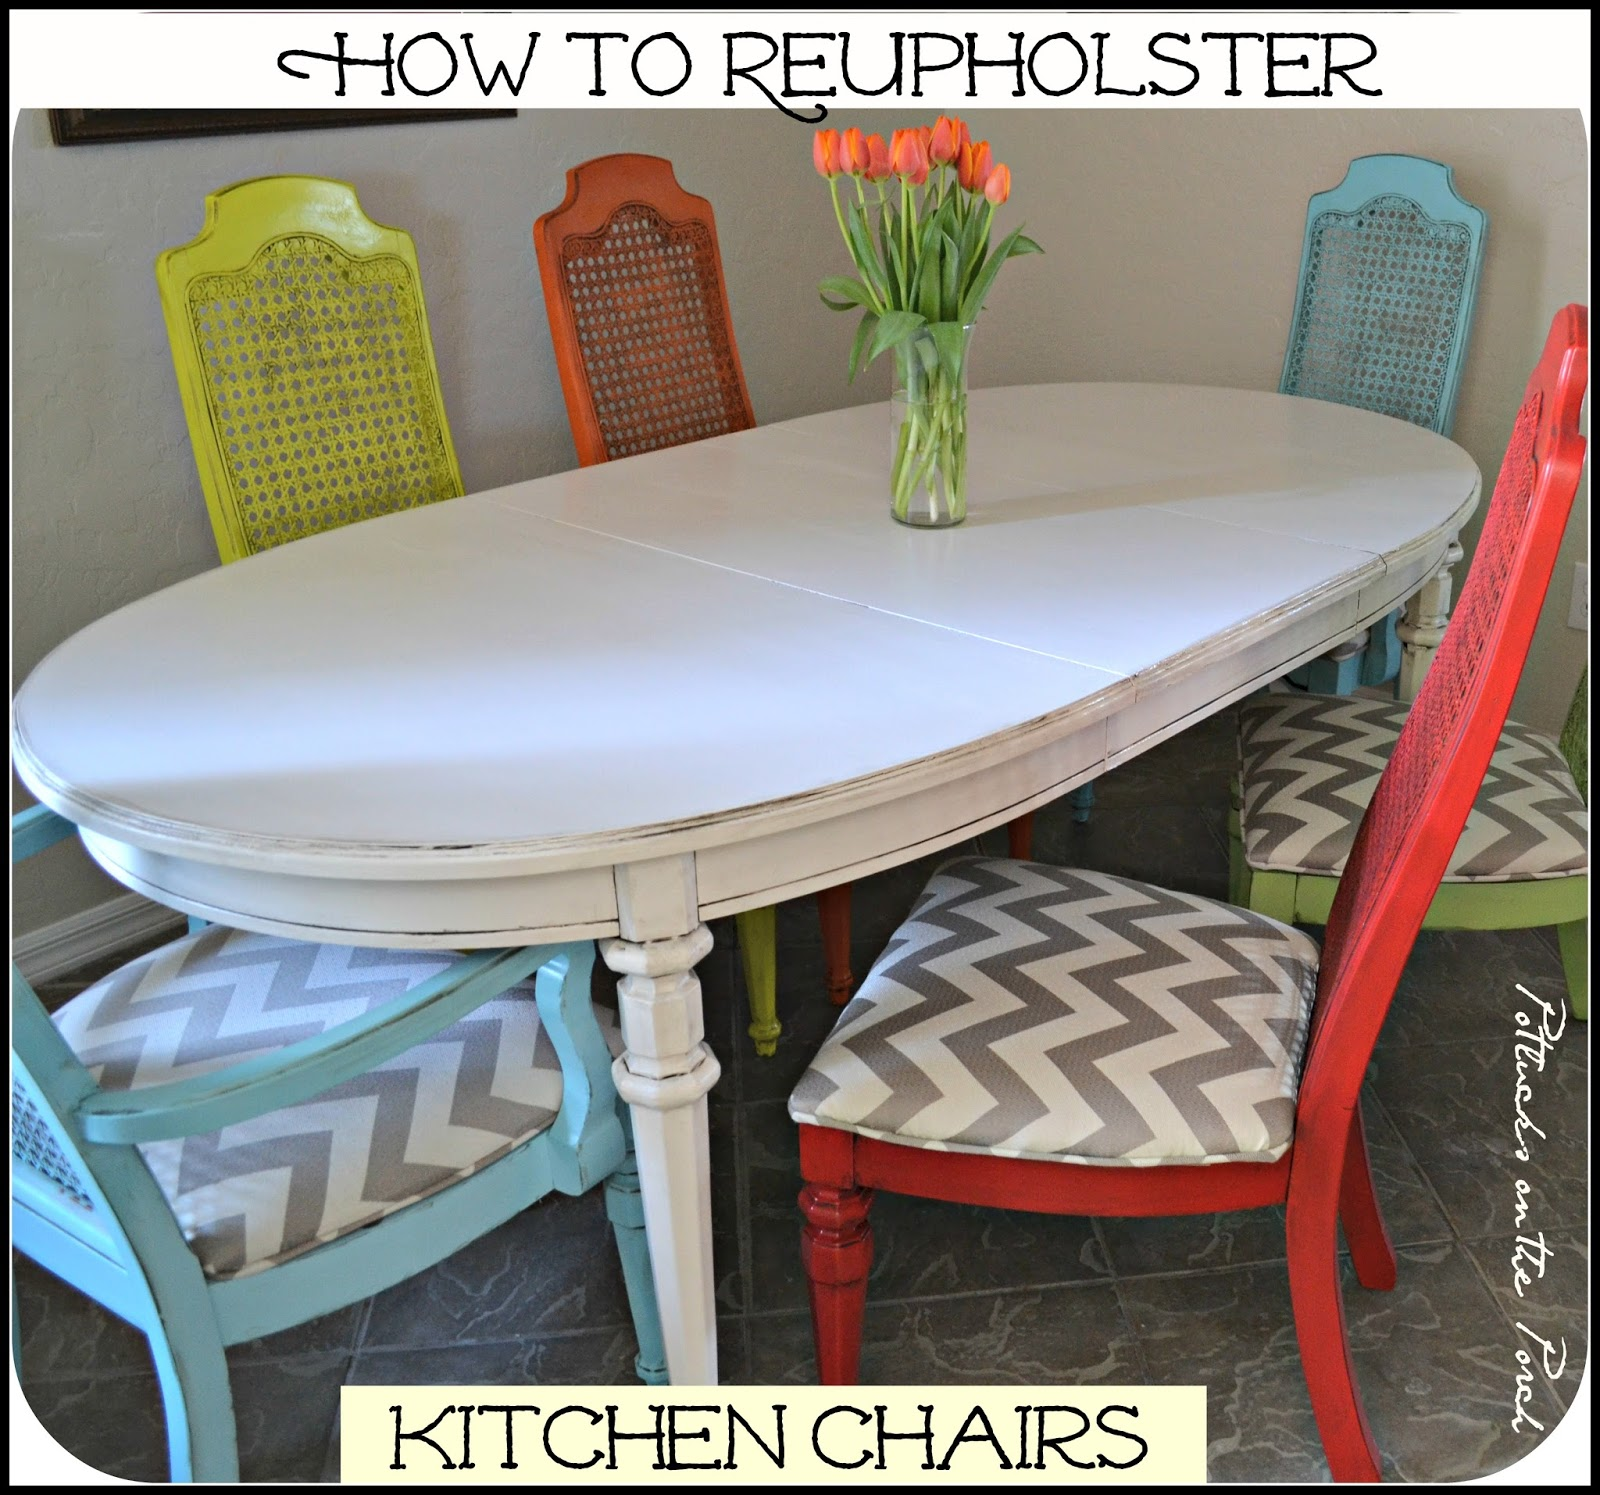 how to reupholster a dining room chair with piping | Potlucks on the Porch: How to Reupholster Kitchen Chairs ...